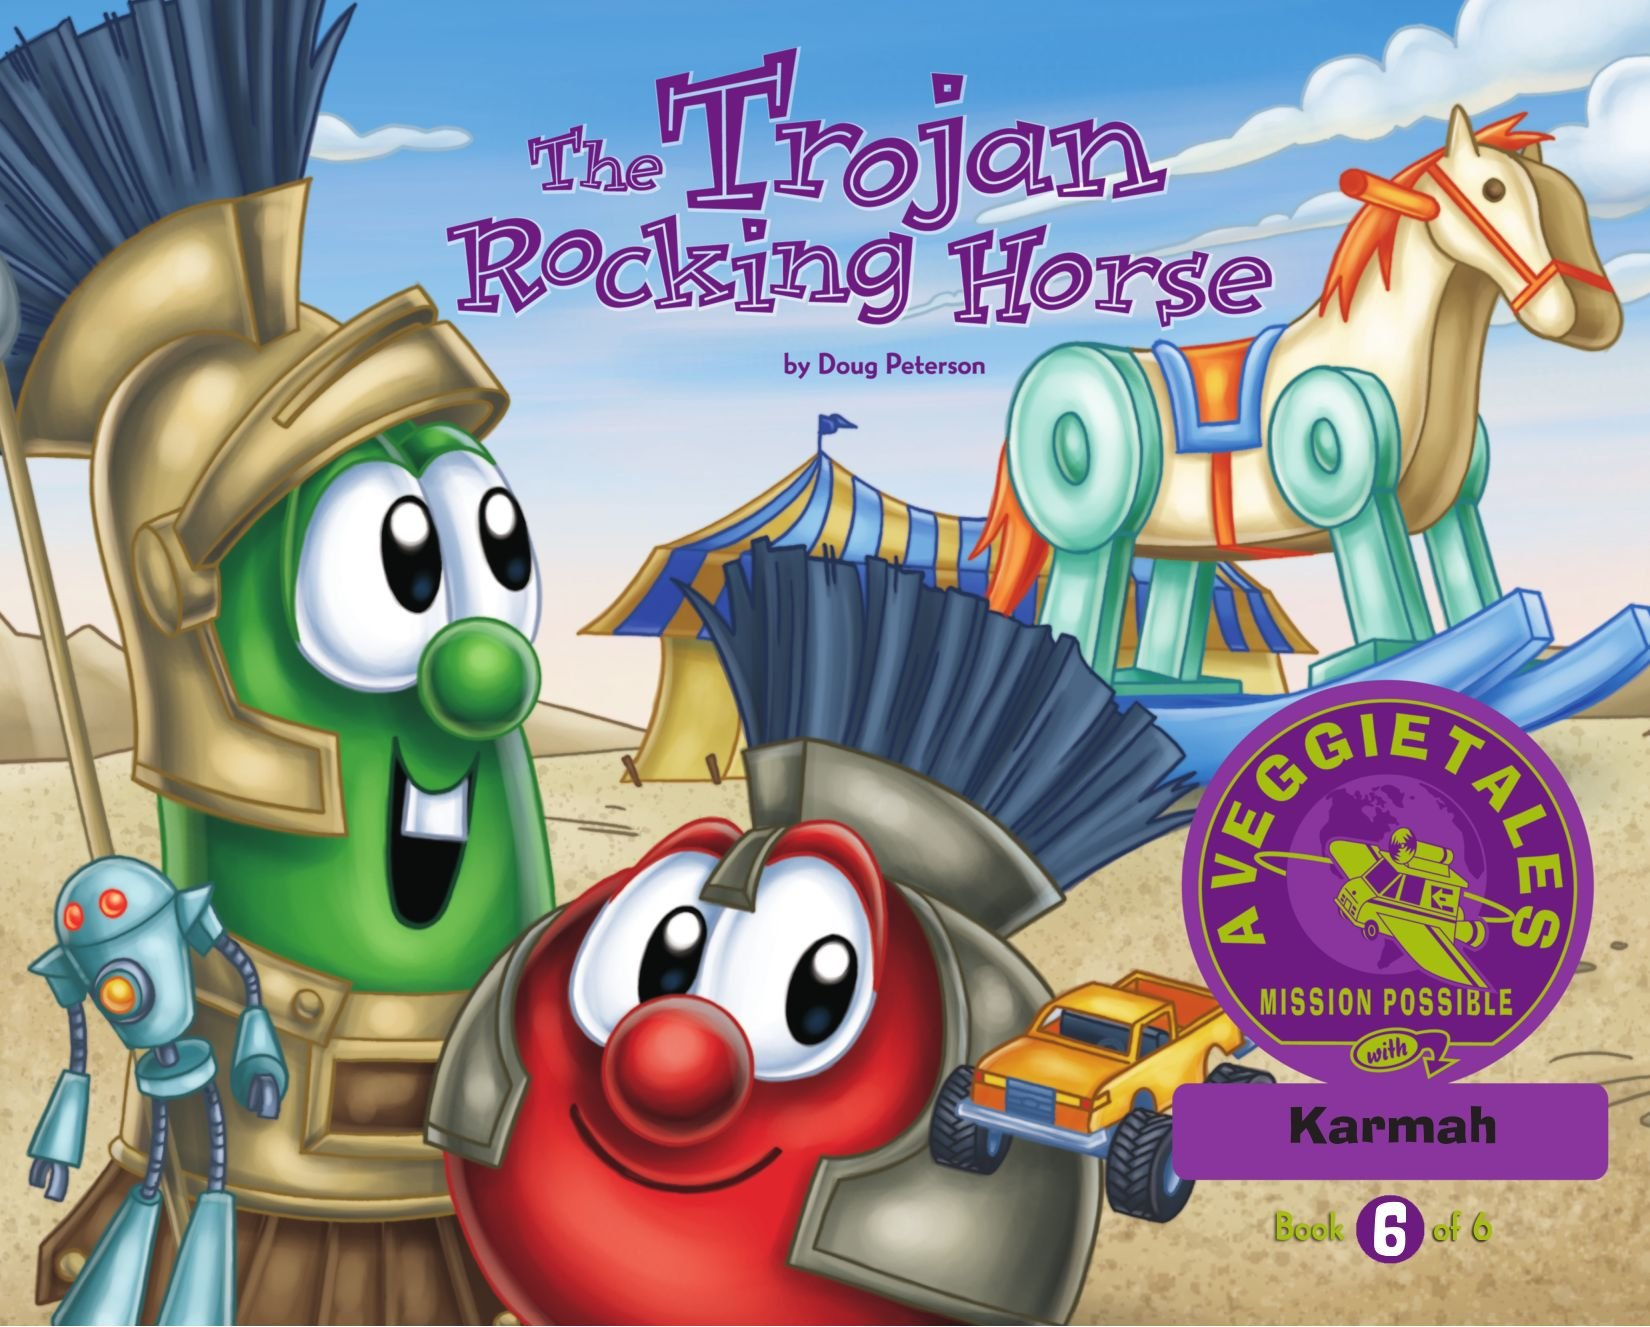 The Trojan Rocking Horse - VeggieTales Mission Possible Adventure Series #6: Personalized for Karmah (Girl) ebook